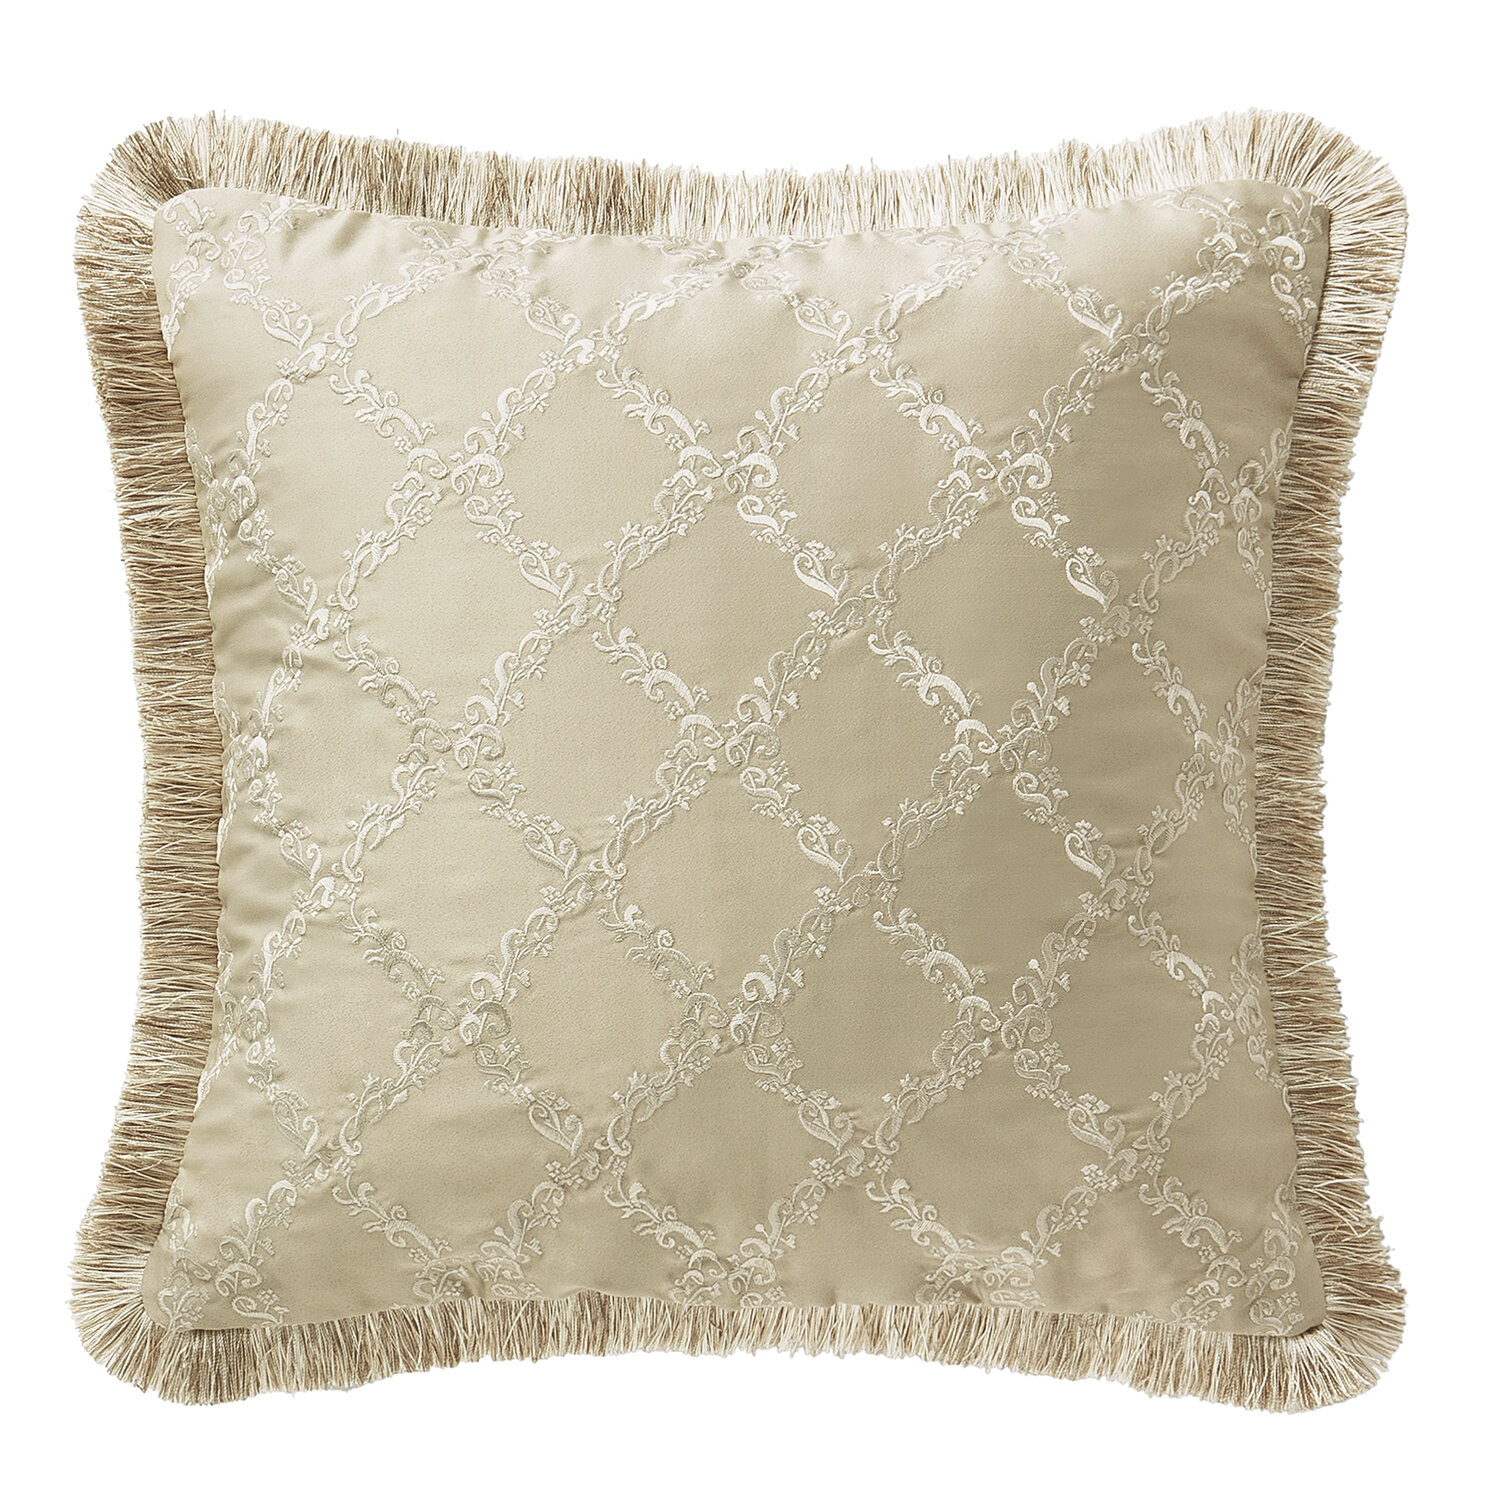 Ivory Cream Waterford Bedding Throw Pillows You Ll Love In 2021 Wayfair